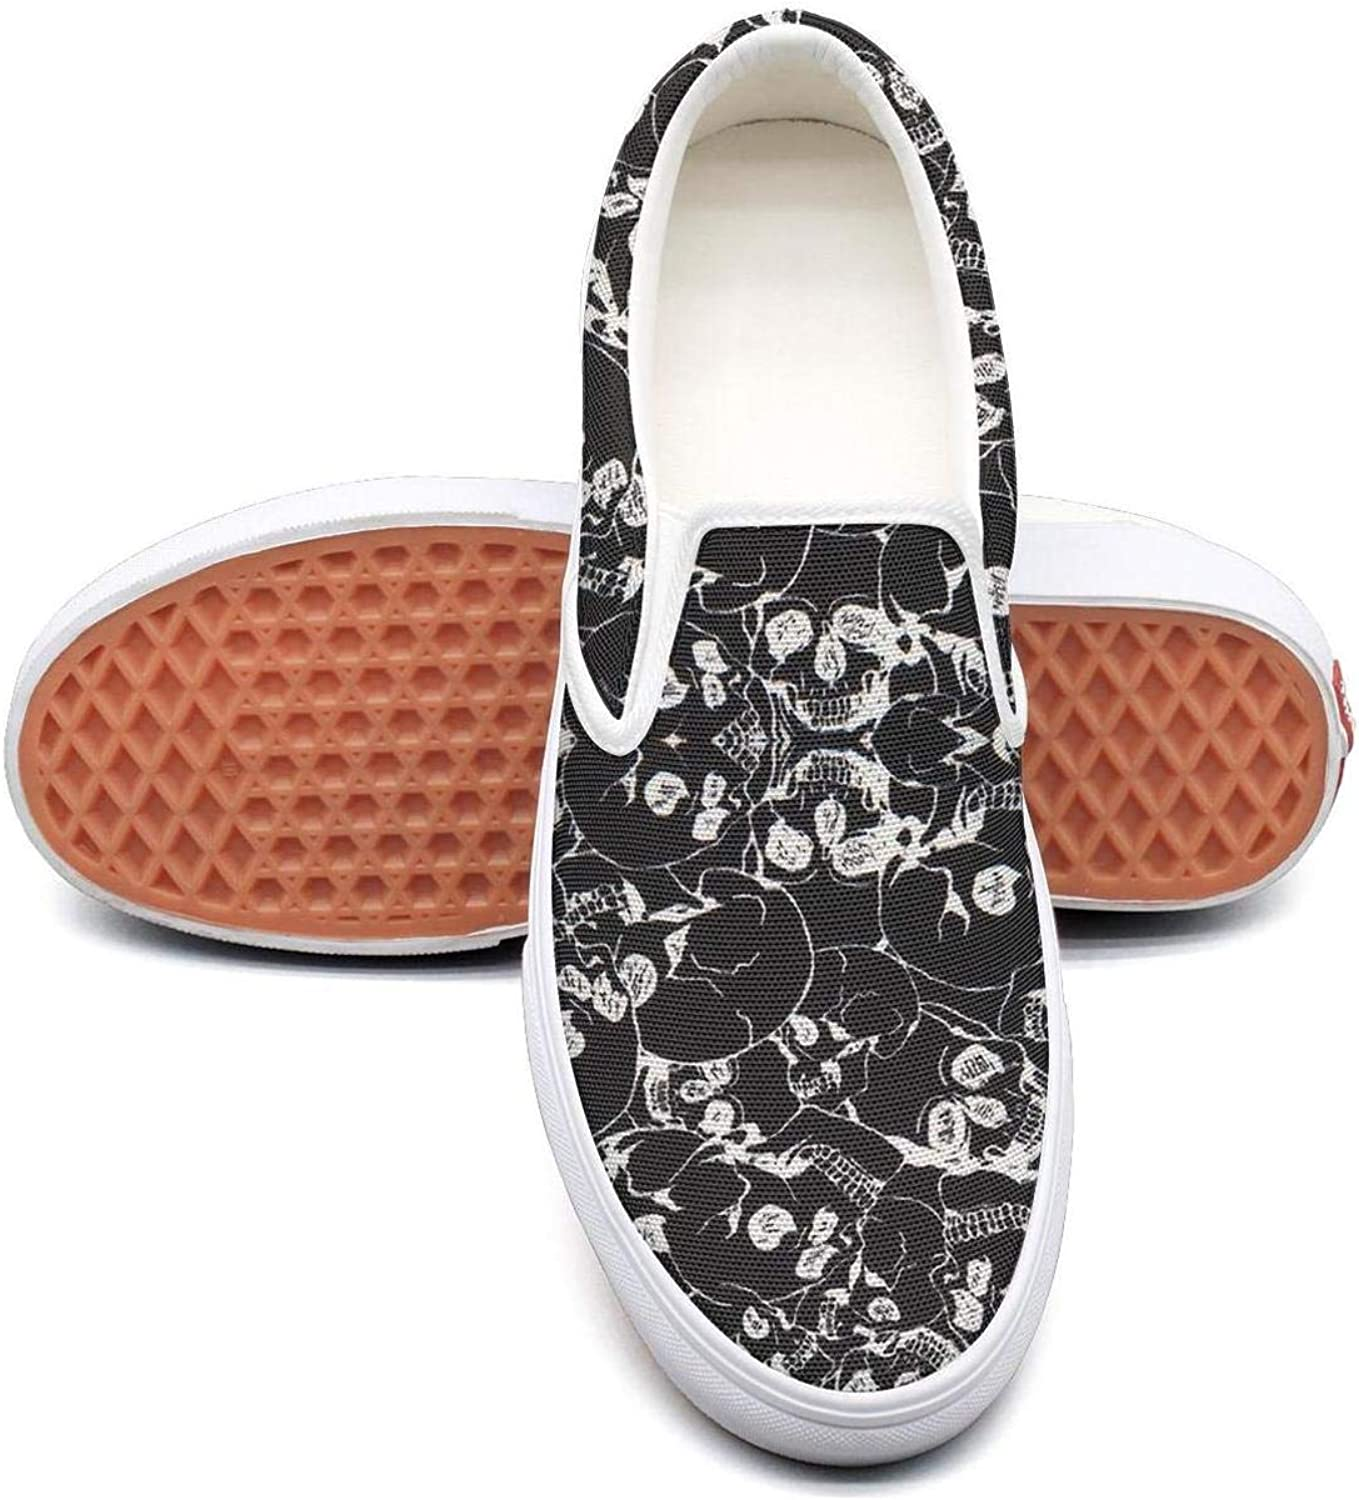 Halloween Inspiration with Skull Prints Slip On Canvas Upper Sneakers Canvas shoes for Women Casual